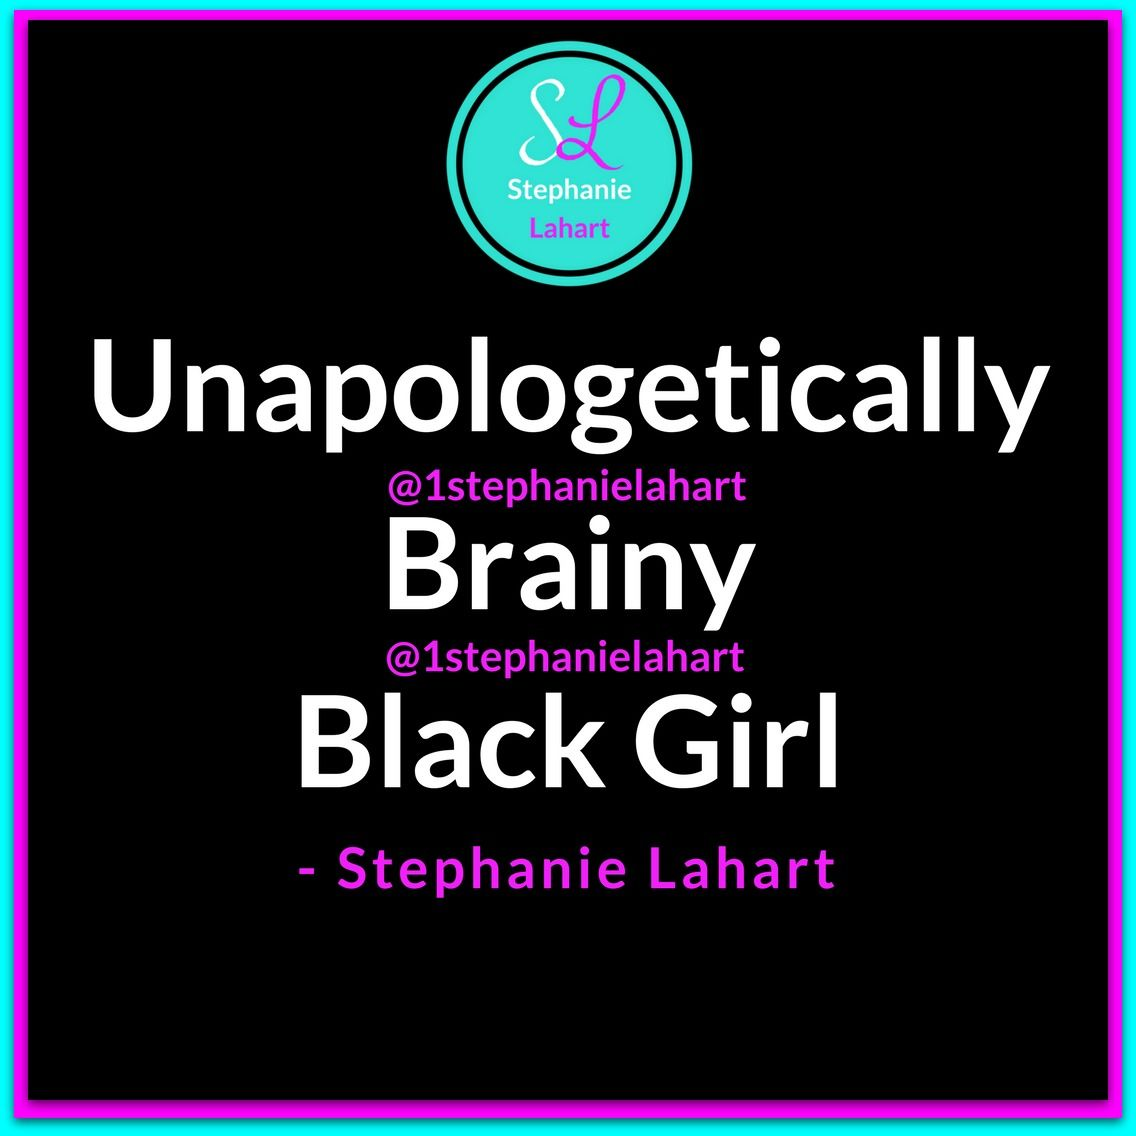 Quotes By Black Women Unapologetically Brainy Black Girl Quotesan Inspiring Quote For .